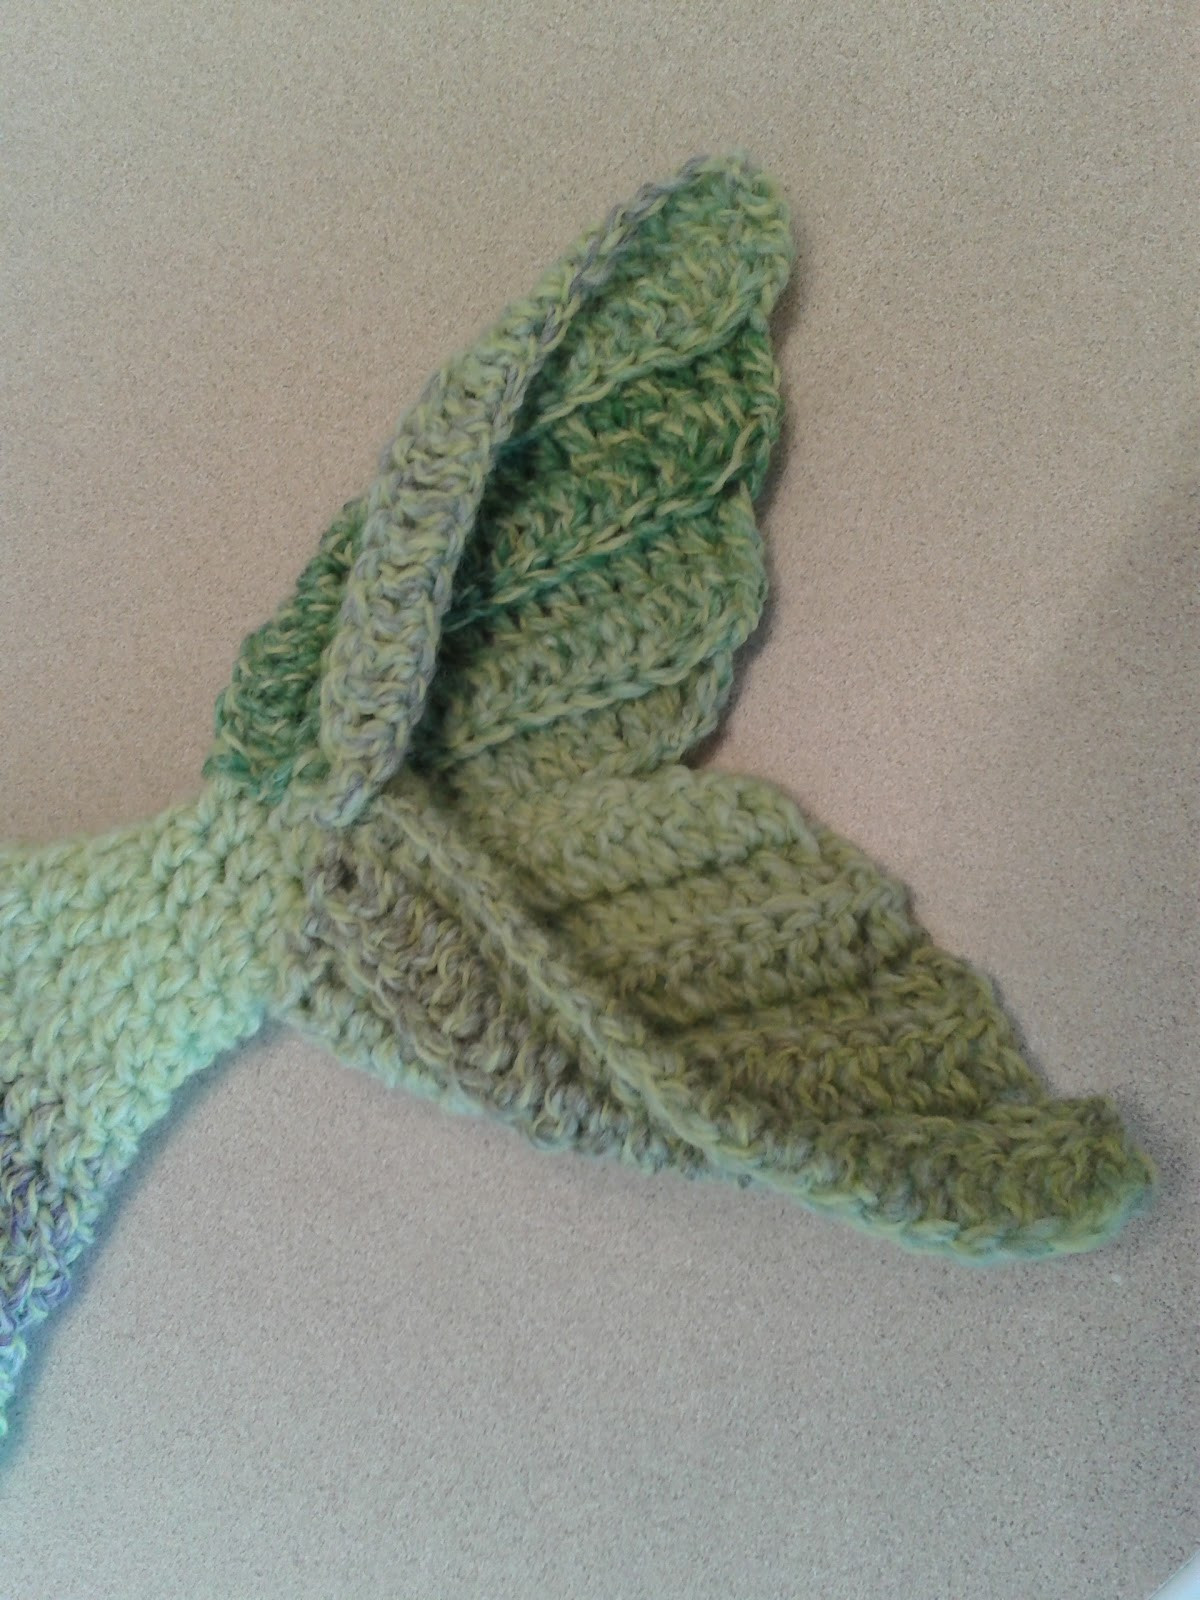 Baby Mermaid Tail Unique Knotty Knotty Crochet Baby Mermaid Prop Pattern Of Fresh 41 Pictures Baby Mermaid Tail